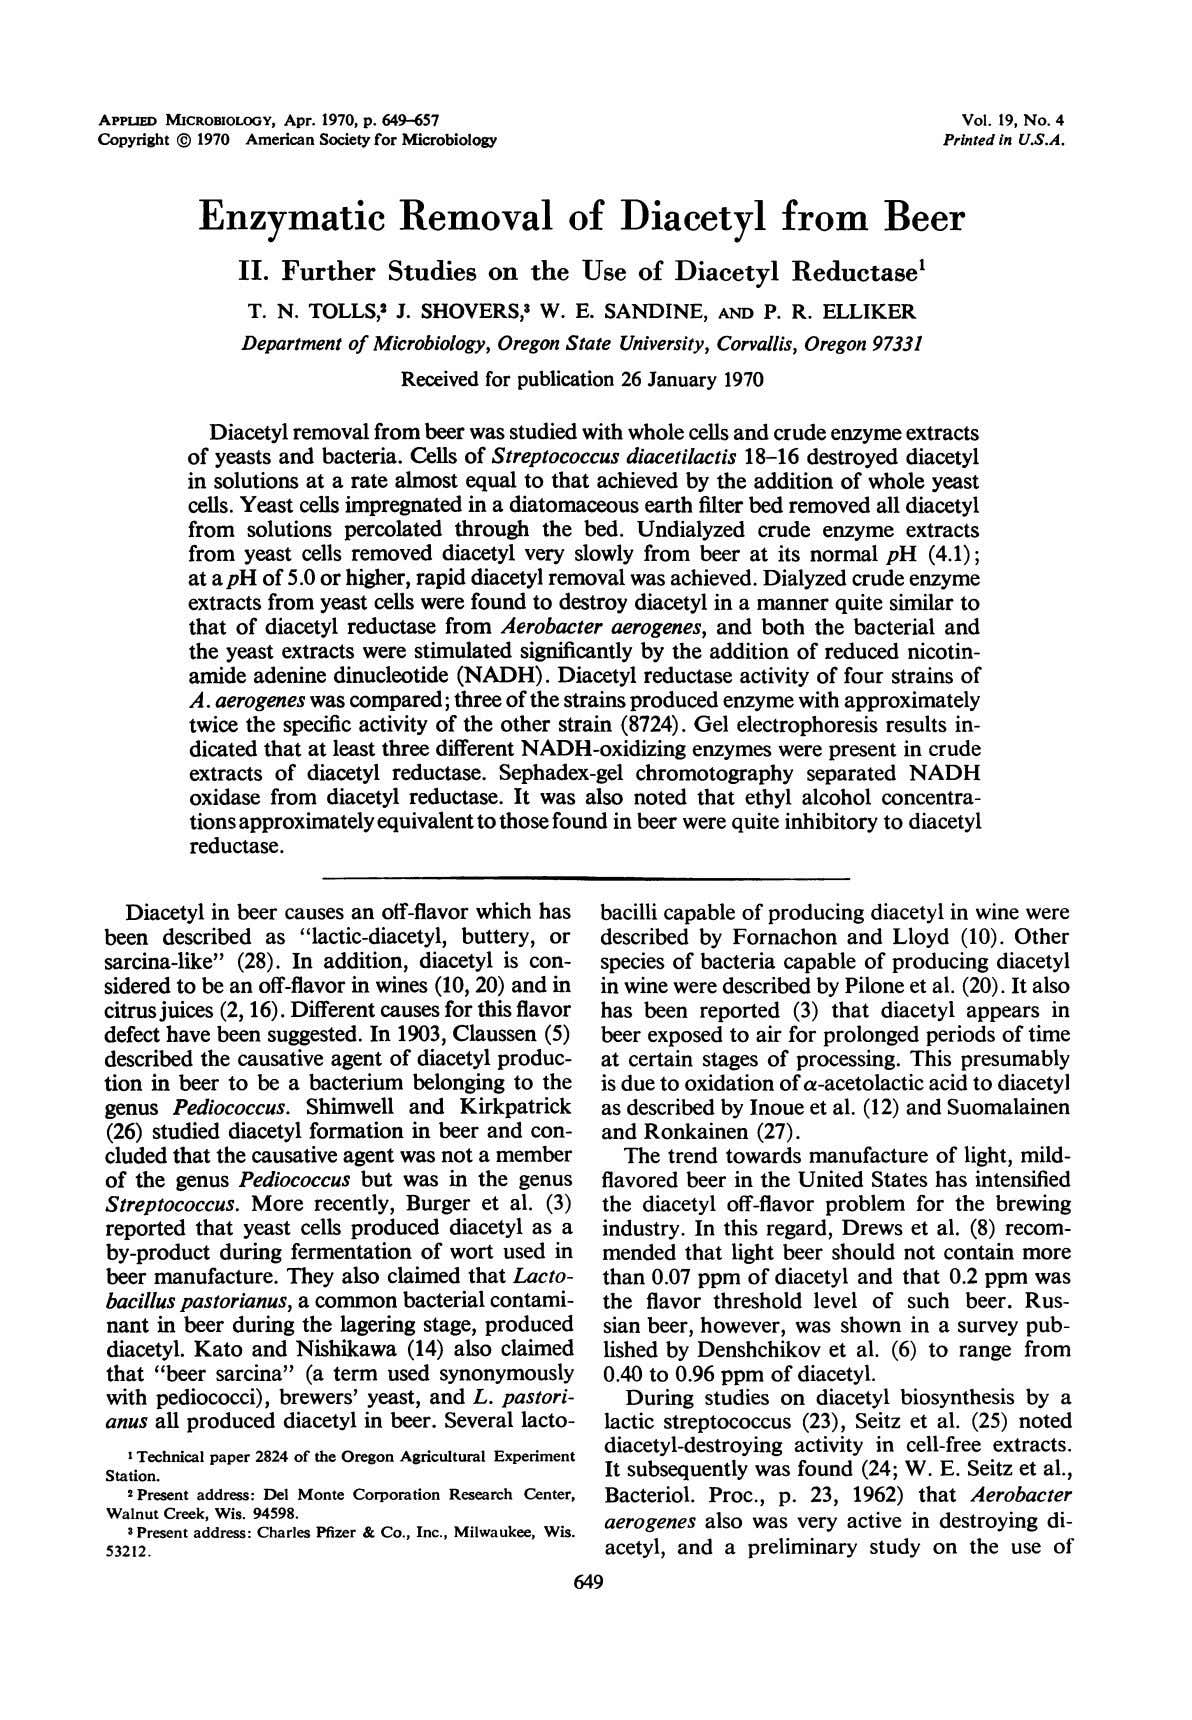 APPLIED MICROBIOLOGY, Apr. 1970, p. 649-657 Vol. 19, No. 4 Copyright © 1970 American Society